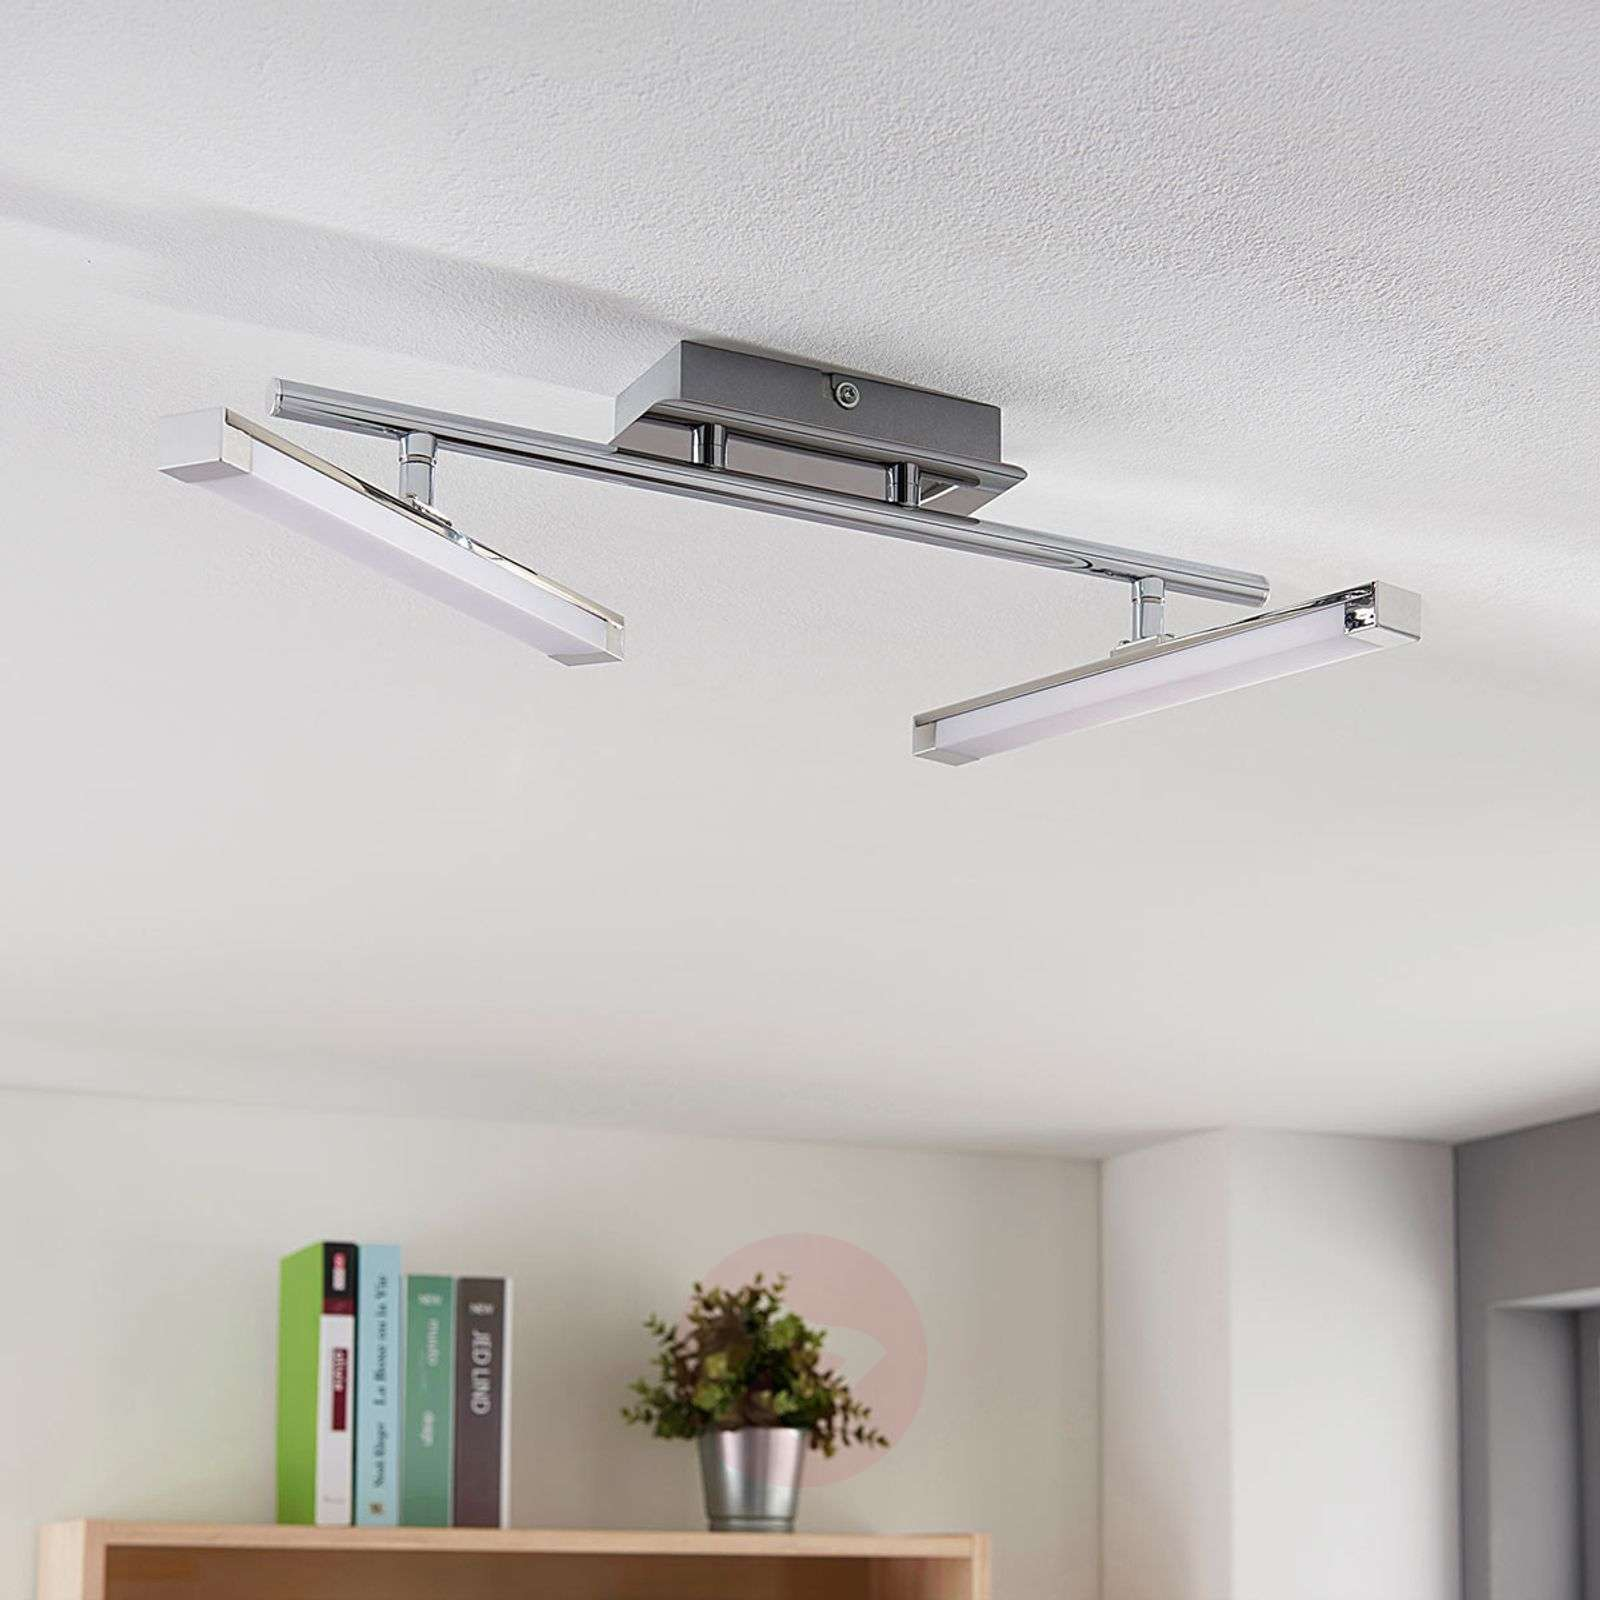 Modern LED ceiling lamp Pilou, three-way dimmable | Lights.co.uk